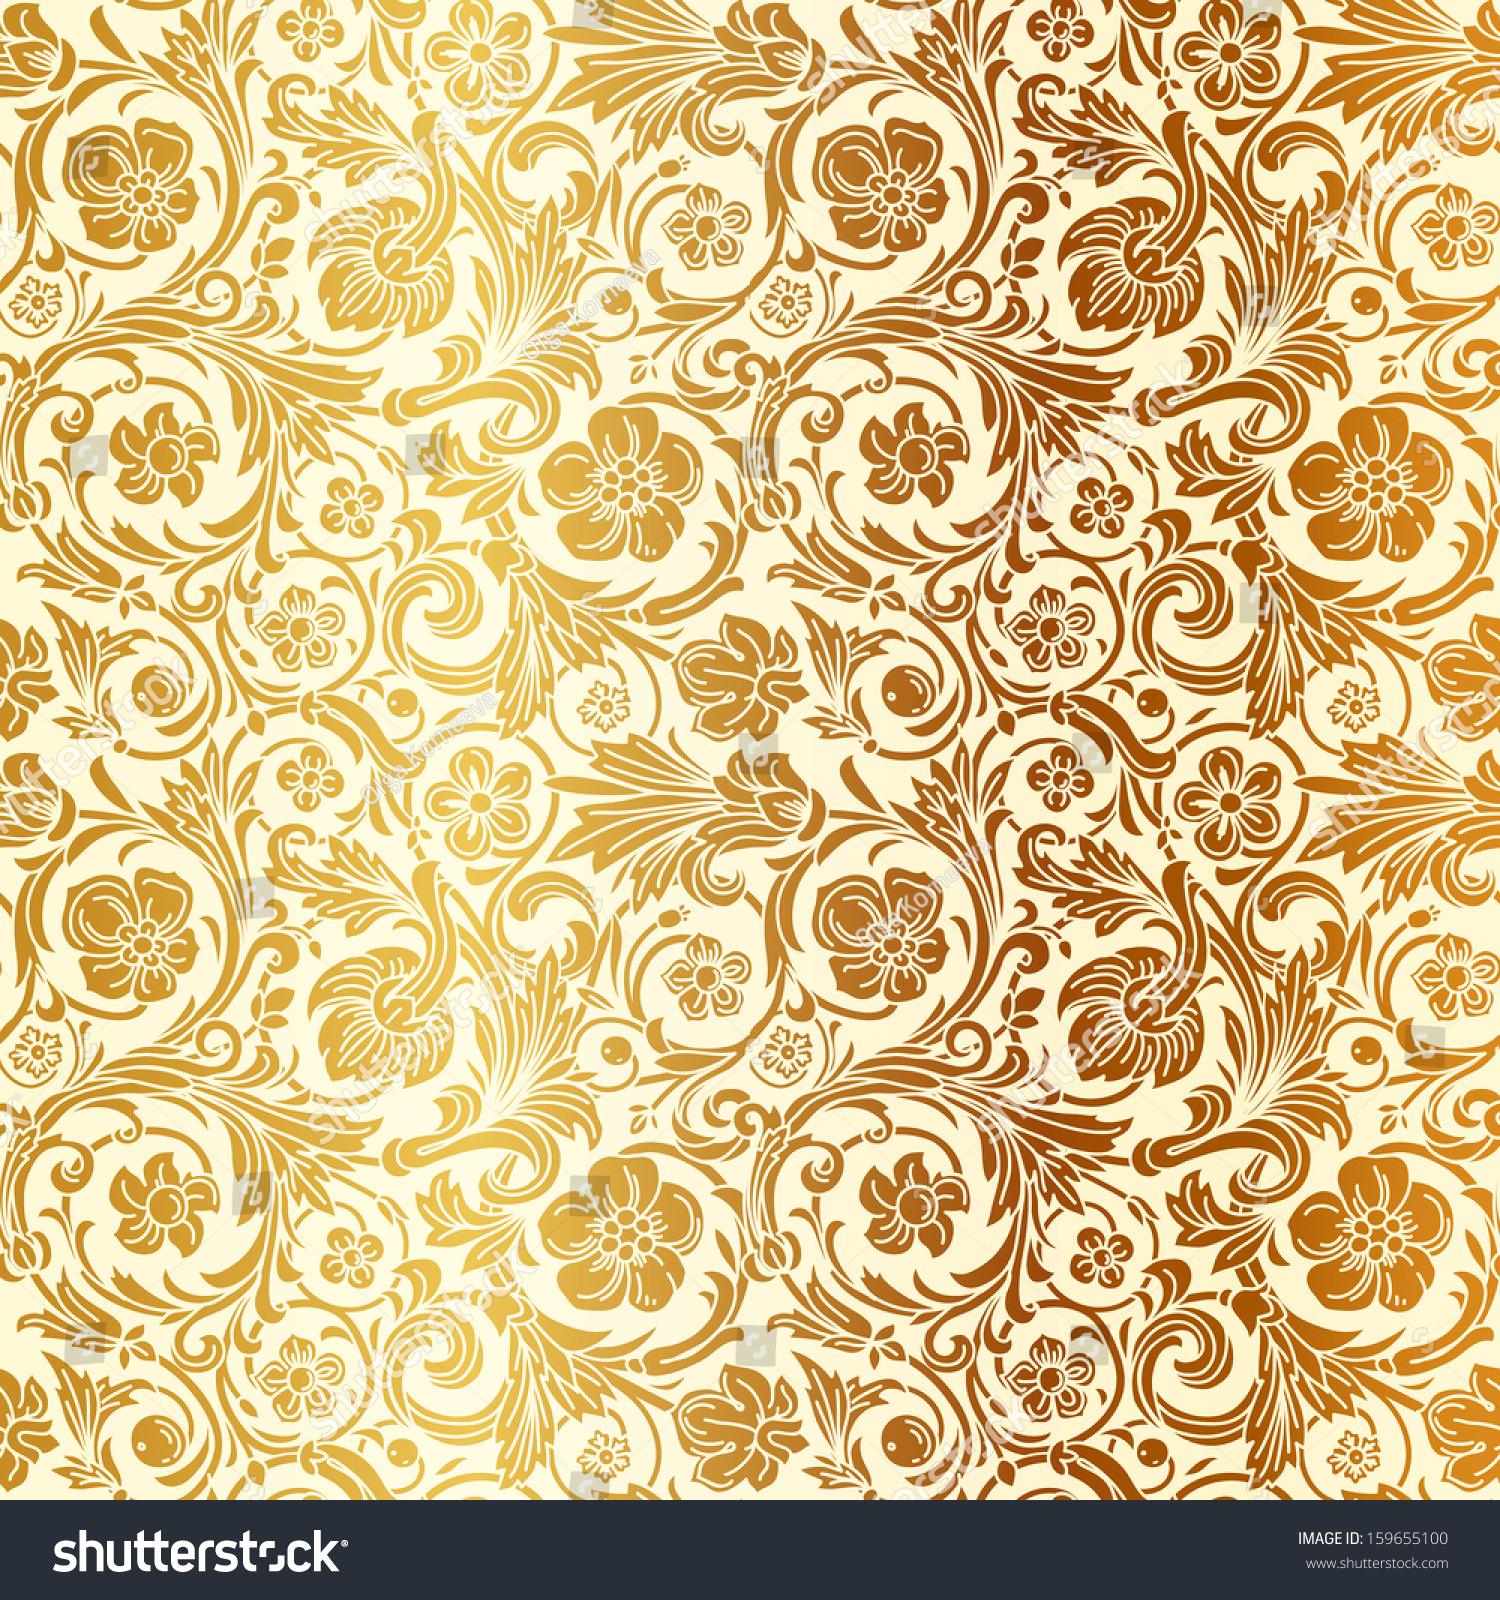 Images of baroque wallpaper patterns sc 12inch ceiling tiles 12 x 12 tile patterns decorative dailygadgetfo Gallery